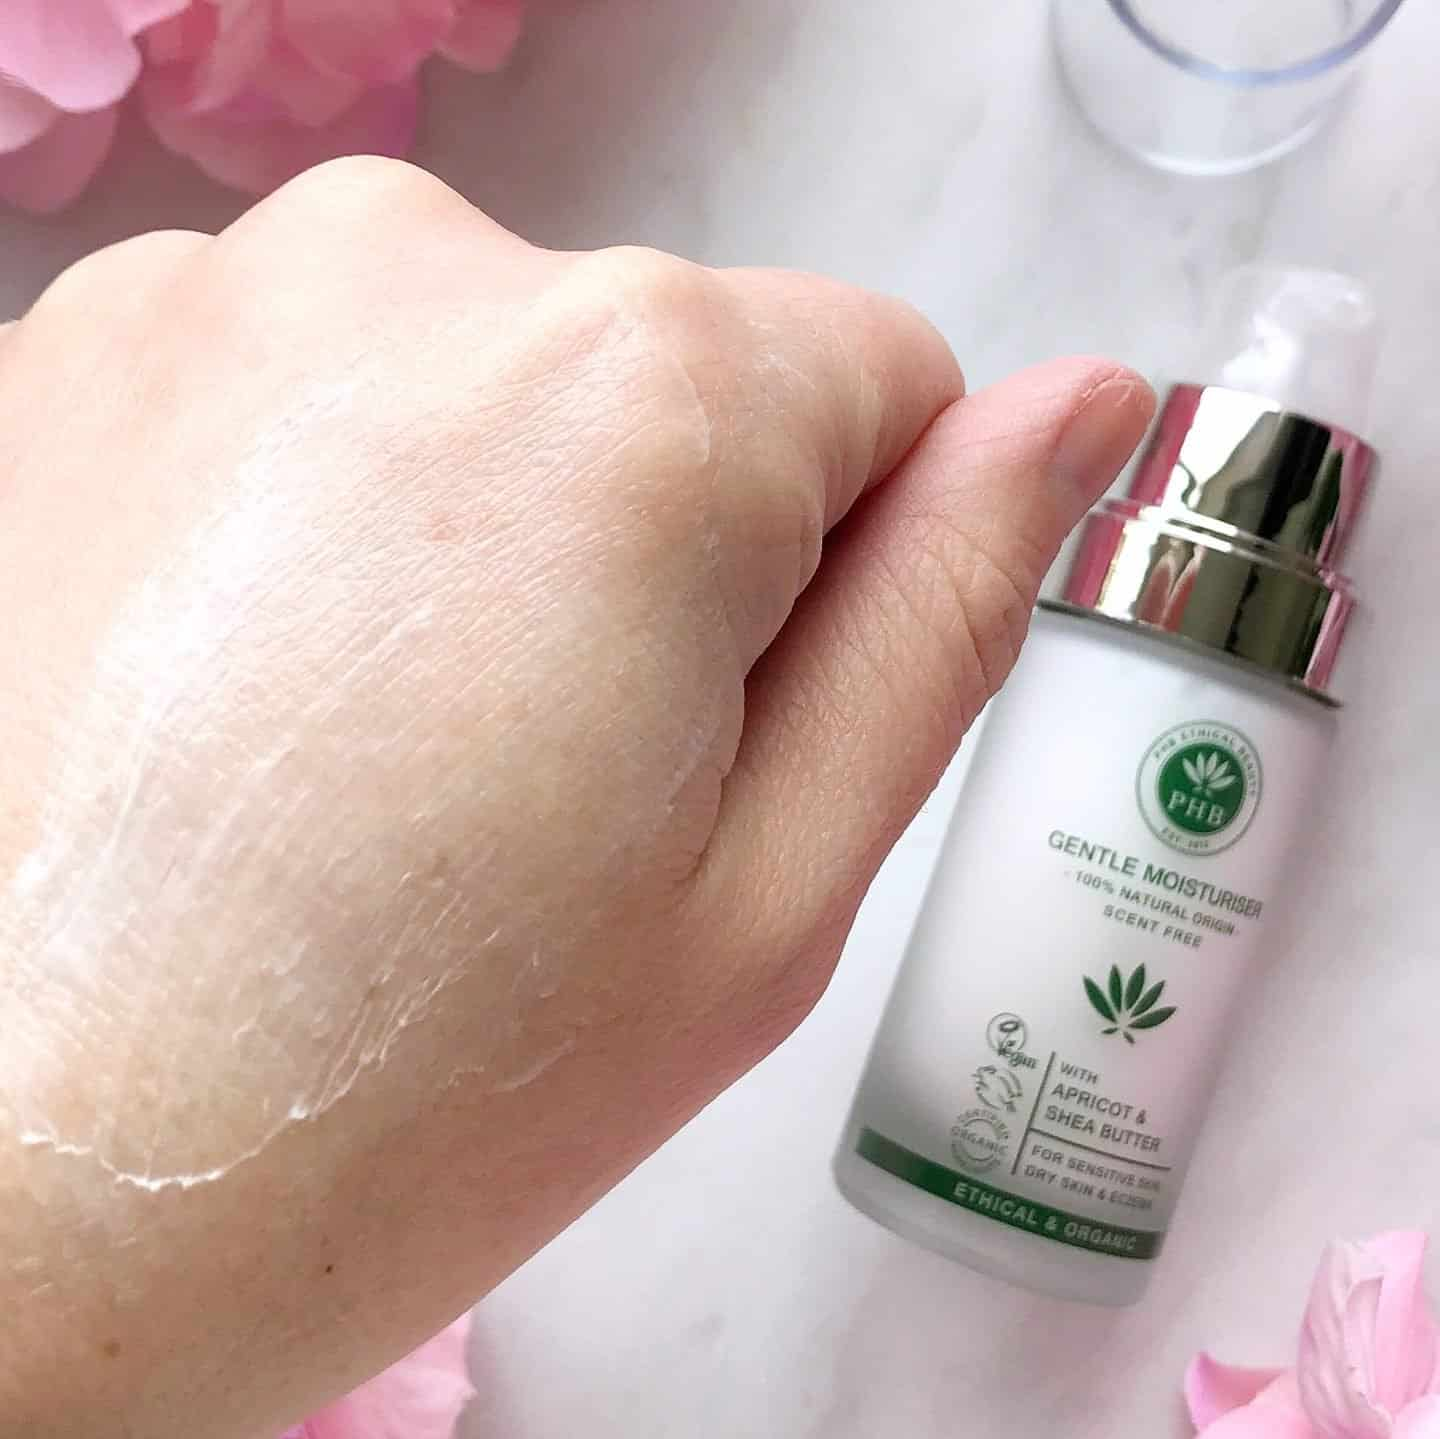 PHB Ethical Beauty Gentle Moisturiser smoothed in